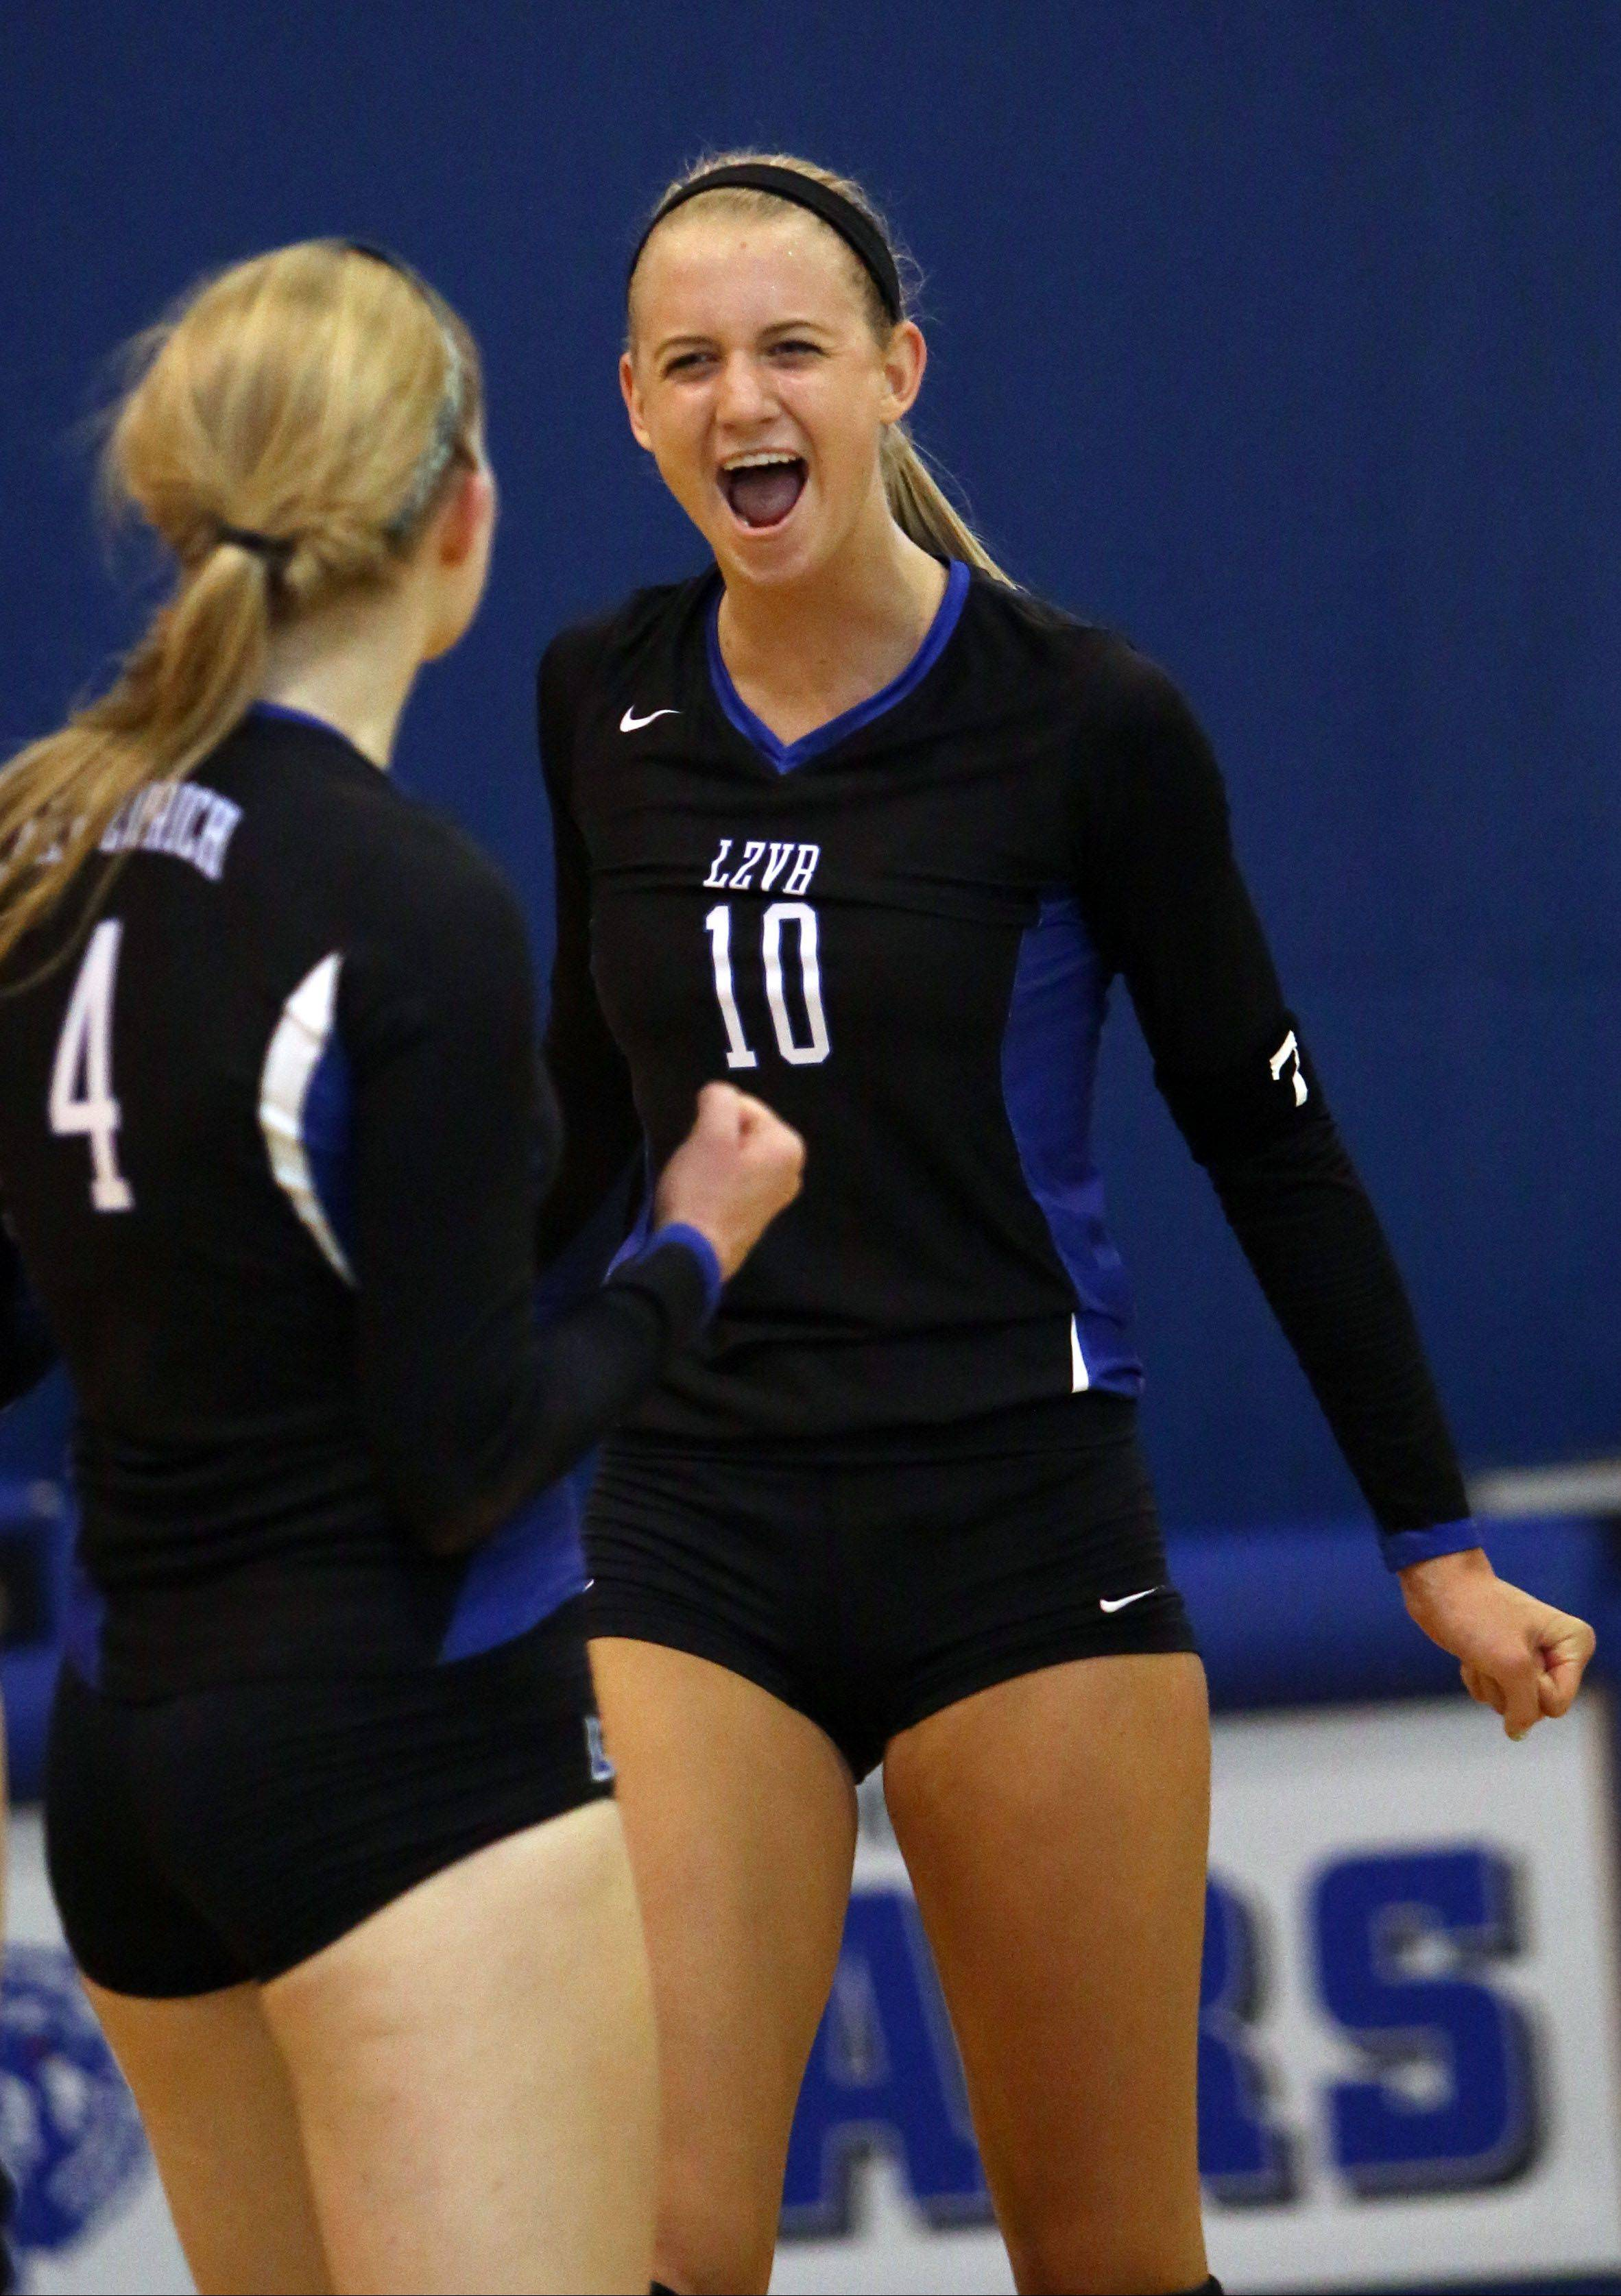 Lake Zurich's Kristen Walding, right, celebrates with teammate Kiley McPeek after winning a point in a matchup against Carmel.